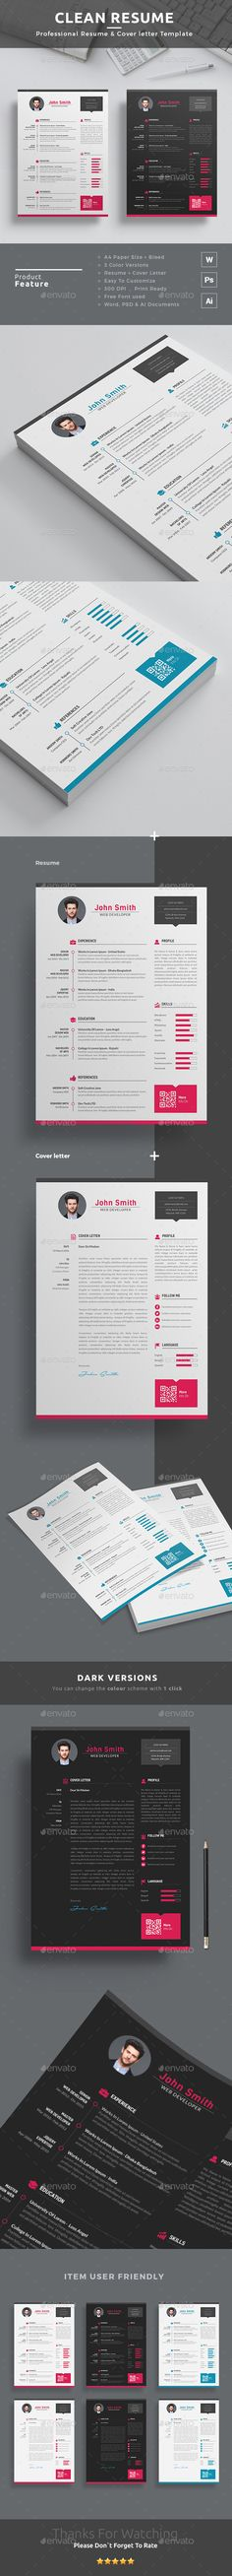 Best Resume/CV Design Template + Free Cover Letter Template | MS WORD + PSD + AI…